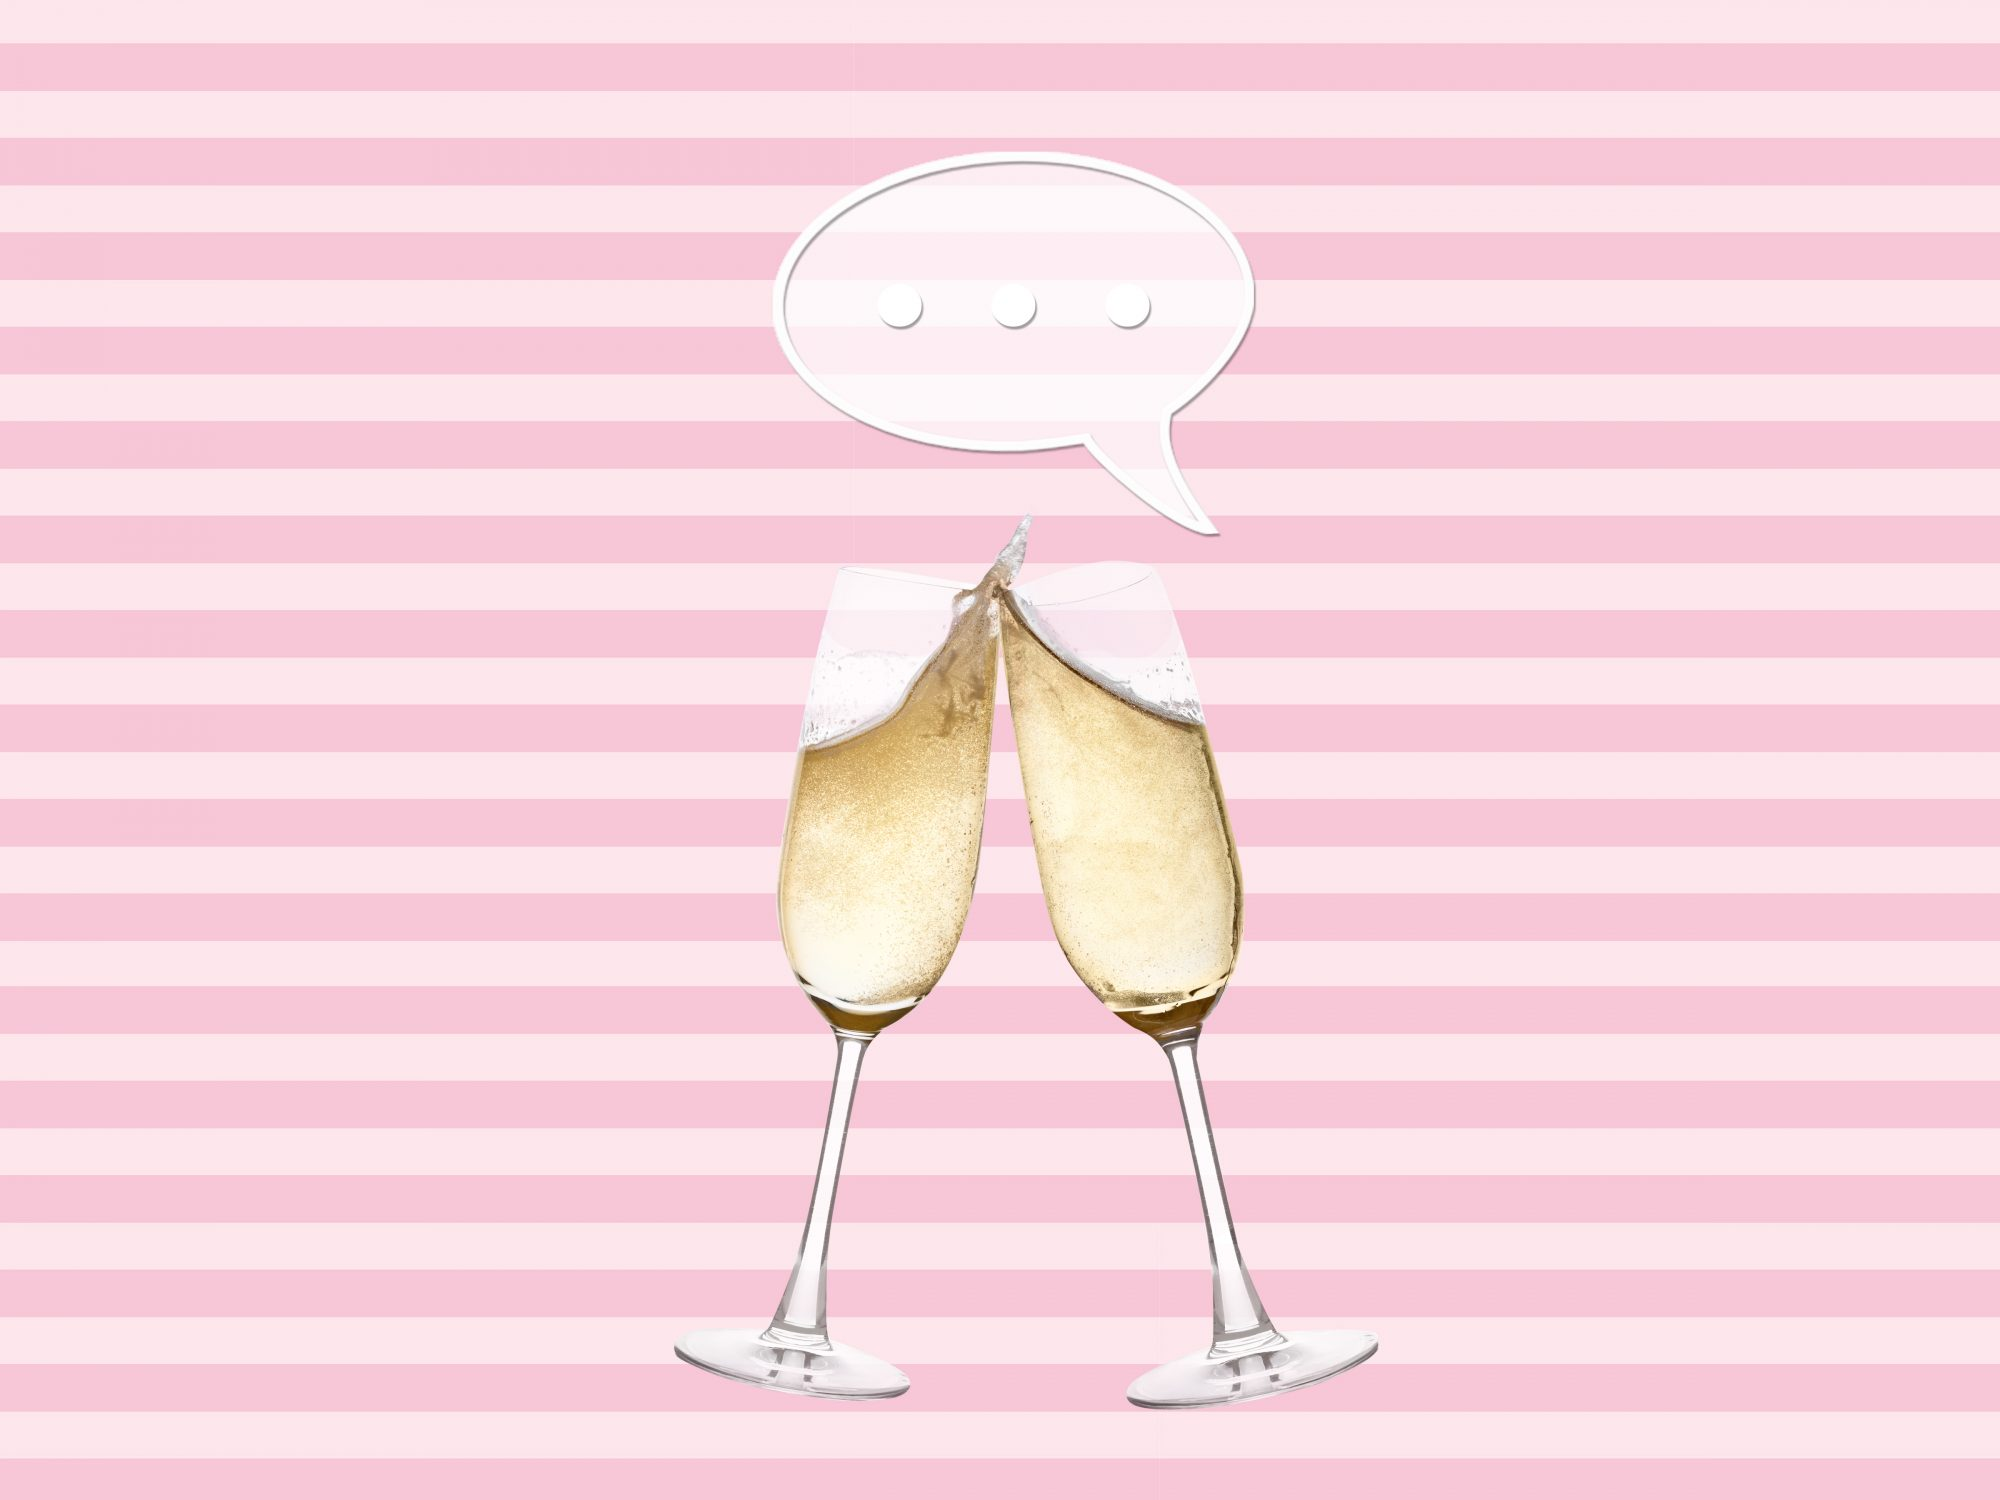 Maid of honor speech quotes: two champagne glasses and a speech bubble on a pink background